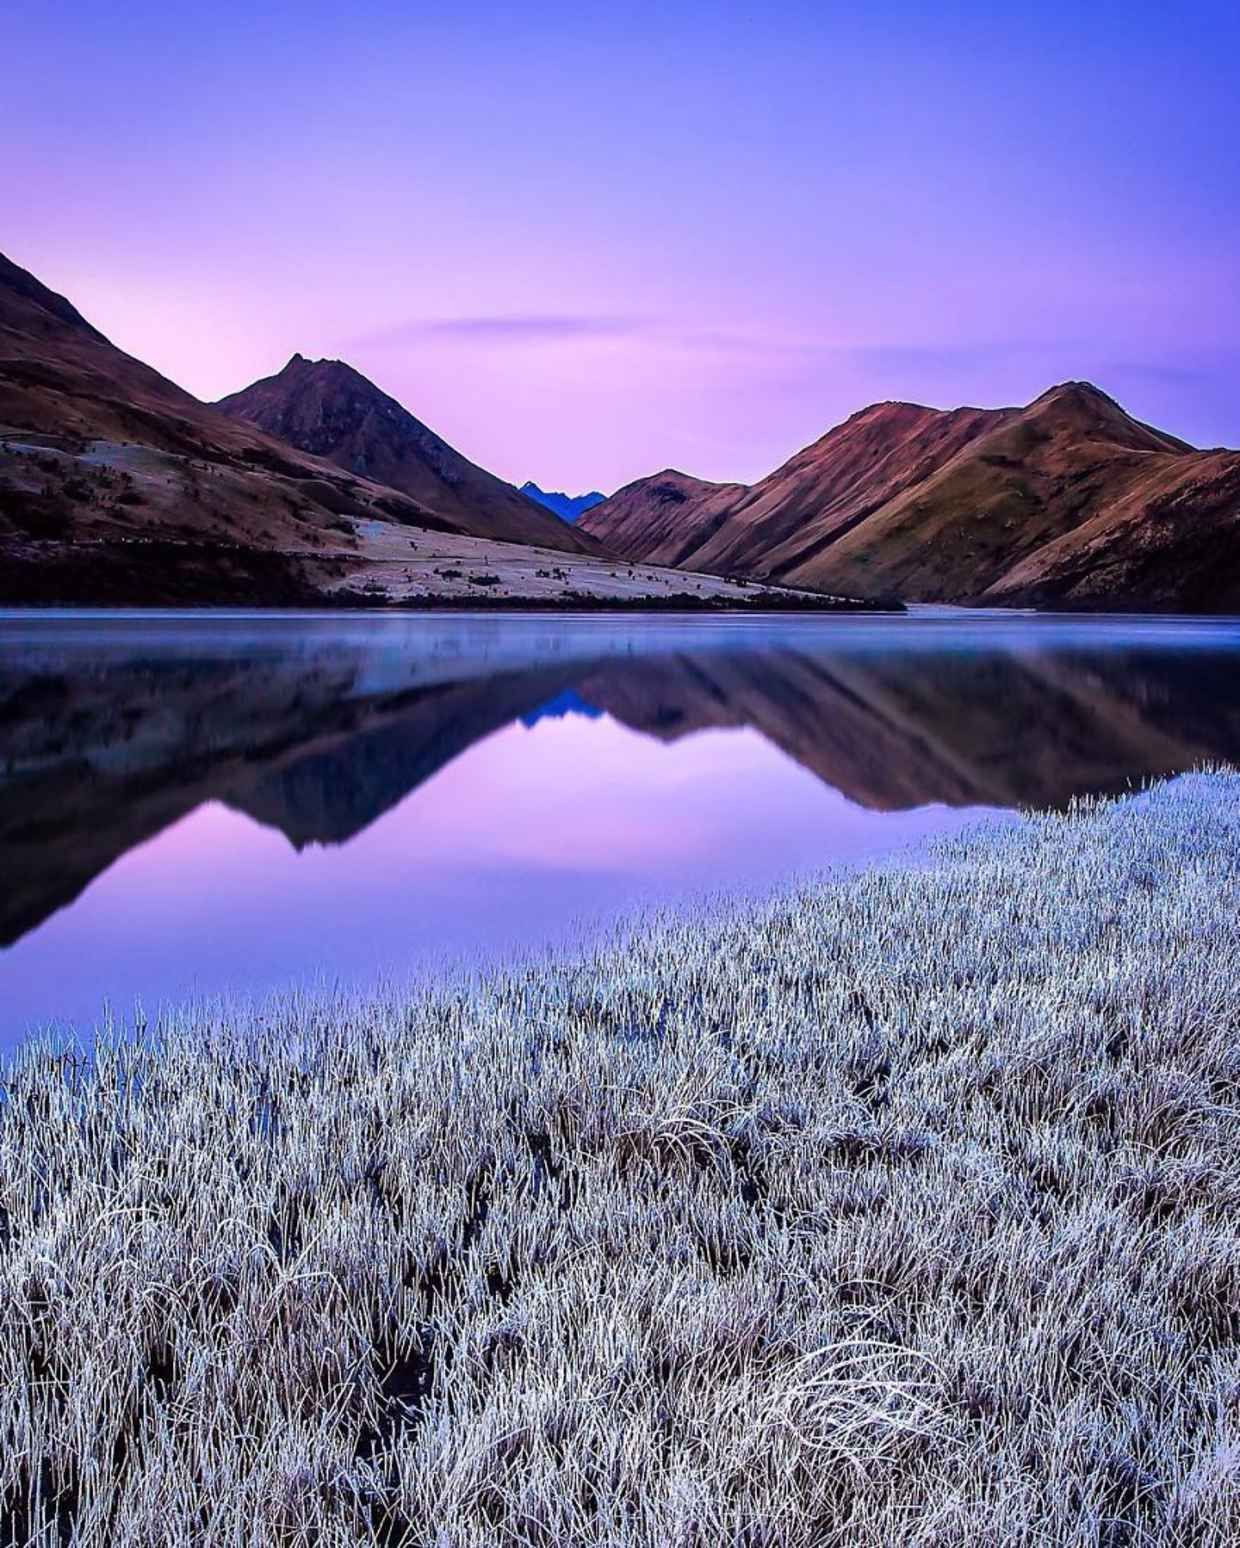 Photographer Explores New Zealands South Island Takes Stunning - Stunning landscape photography of new zealand south island rach stewart